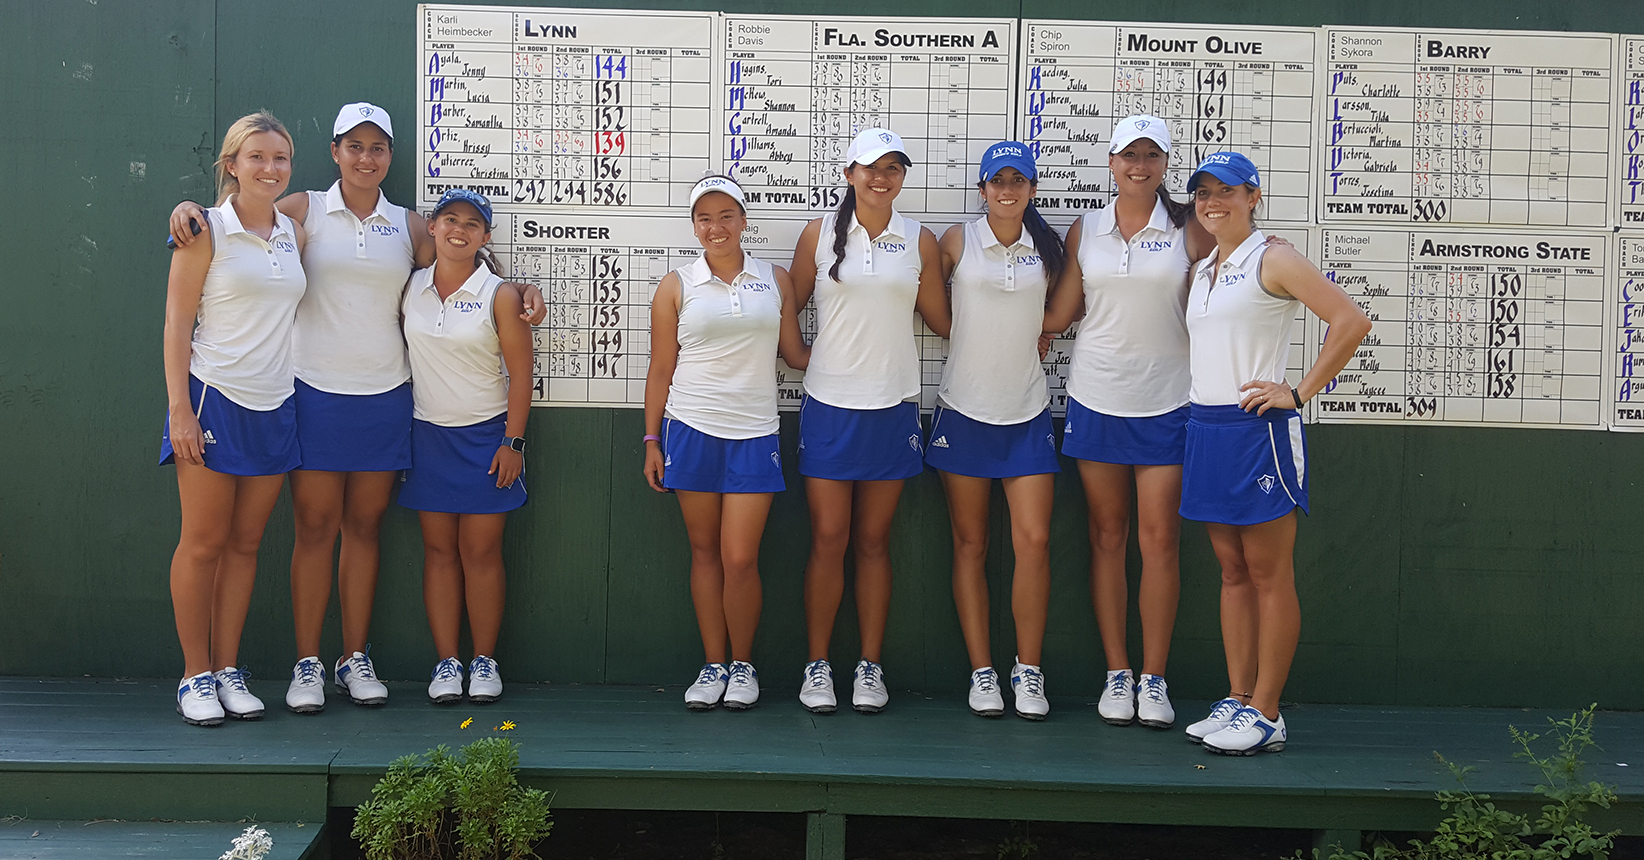 Lynn Women's Golf Finishes Second at the Saint Leo Invitational